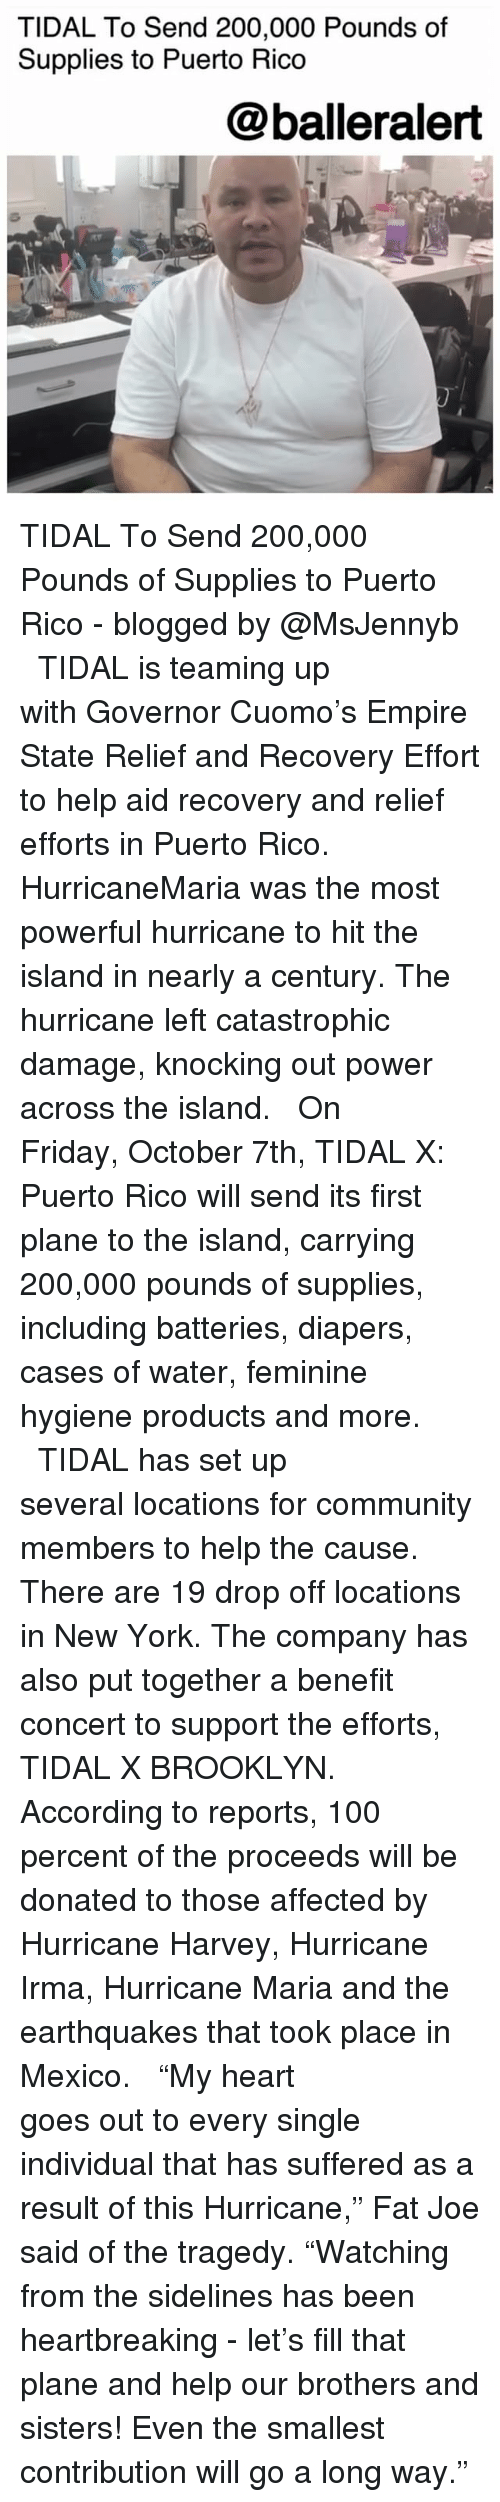 """the hurricane: TIDAL To Send 200,000 Pounds of  Supplies to Puerto Rico  @balleralert TIDAL To Send 200,000 Pounds of Supplies to Puerto Rico - blogged by @MsJennyb ⠀⠀⠀⠀⠀⠀⠀ ⠀⠀⠀⠀⠀⠀⠀ TIDAL is teaming up with Governor Cuomo's Empire State Relief and Recovery Effort to help aid recovery and relief efforts in Puerto Rico. ⠀⠀⠀⠀⠀⠀⠀ ⠀⠀⠀⠀⠀⠀⠀ HurricaneMaria was the most powerful hurricane to hit the island in nearly a century. The hurricane left catastrophic damage, knocking out power across the island. ⠀⠀⠀⠀⠀⠀⠀ ⠀⠀⠀⠀⠀⠀⠀ On Friday, October 7th, TIDAL X: Puerto Rico will send its first plane to the island, carrying 200,000 pounds of supplies, including batteries, diapers, cases of water, feminine hygiene products and more. ⠀⠀⠀⠀⠀⠀⠀ ⠀⠀⠀⠀⠀⠀⠀ TIDAL has set up several locations for community members to help the cause. There are 19 drop off locations in New York. The company has also put together a benefit concert to support the efforts, TIDAL X BROOKLYN. According to reports, 100 percent of the proceeds will be donated to those affected by Hurricane Harvey, Hurricane Irma, Hurricane Maria and the earthquakes that took place in Mexico. ⠀⠀⠀⠀⠀⠀⠀ ⠀⠀⠀⠀⠀⠀⠀ """"My heart goes out to every single individual that has suffered as a result of this Hurricane,"""" Fat Joe said of the tragedy. """"Watching from the sidelines has been heartbreaking - let's fill that plane and help our brothers and sisters! Even the smallest contribution will go a long way."""""""